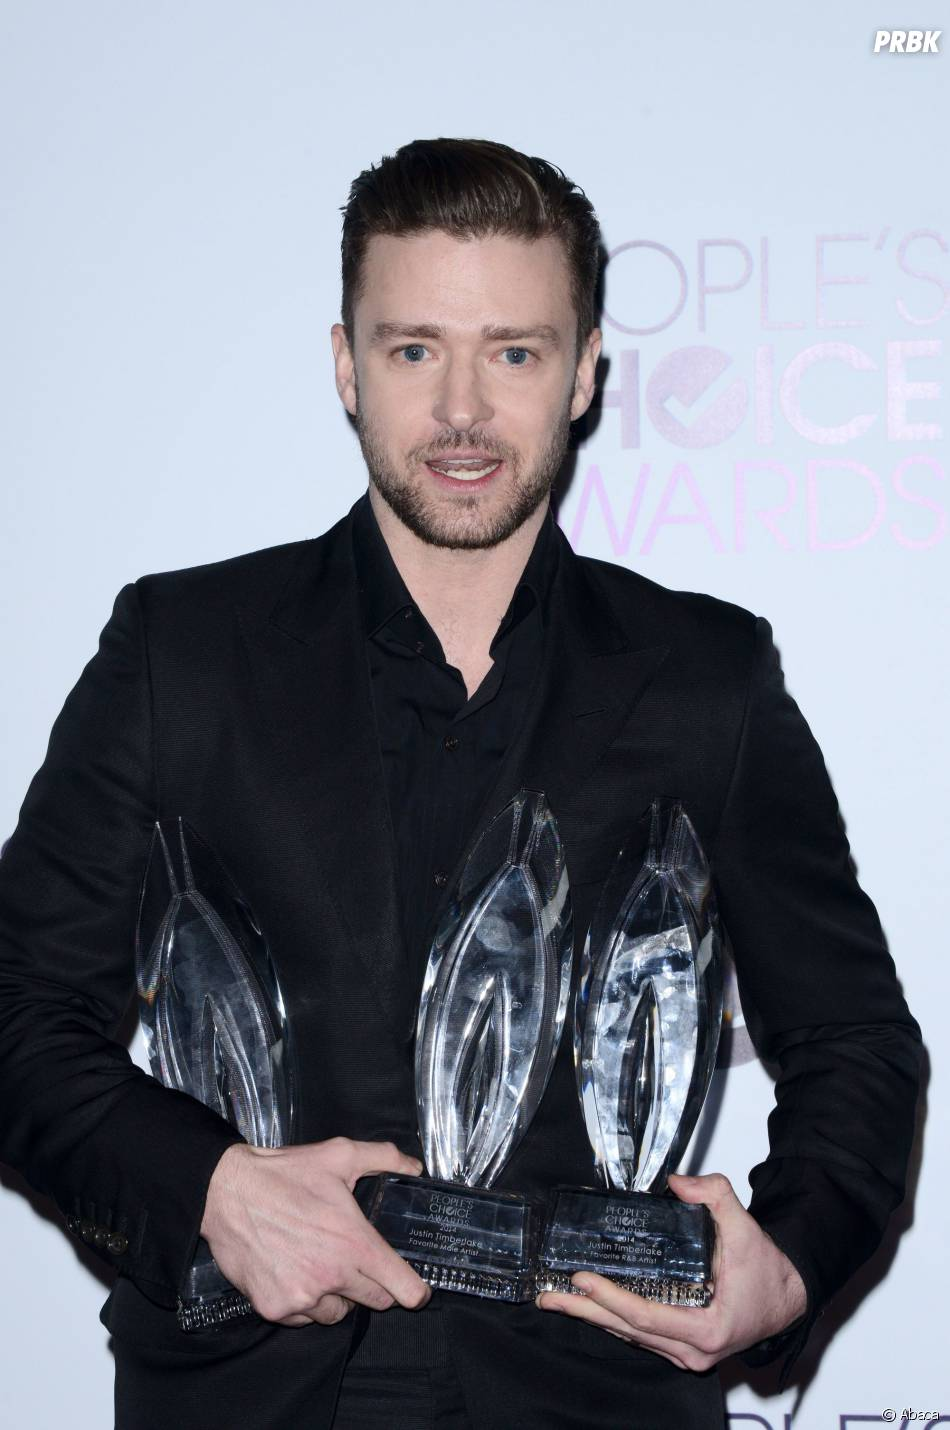 People's Choice Awards 2014 : trois prix pour Justin Timberlake